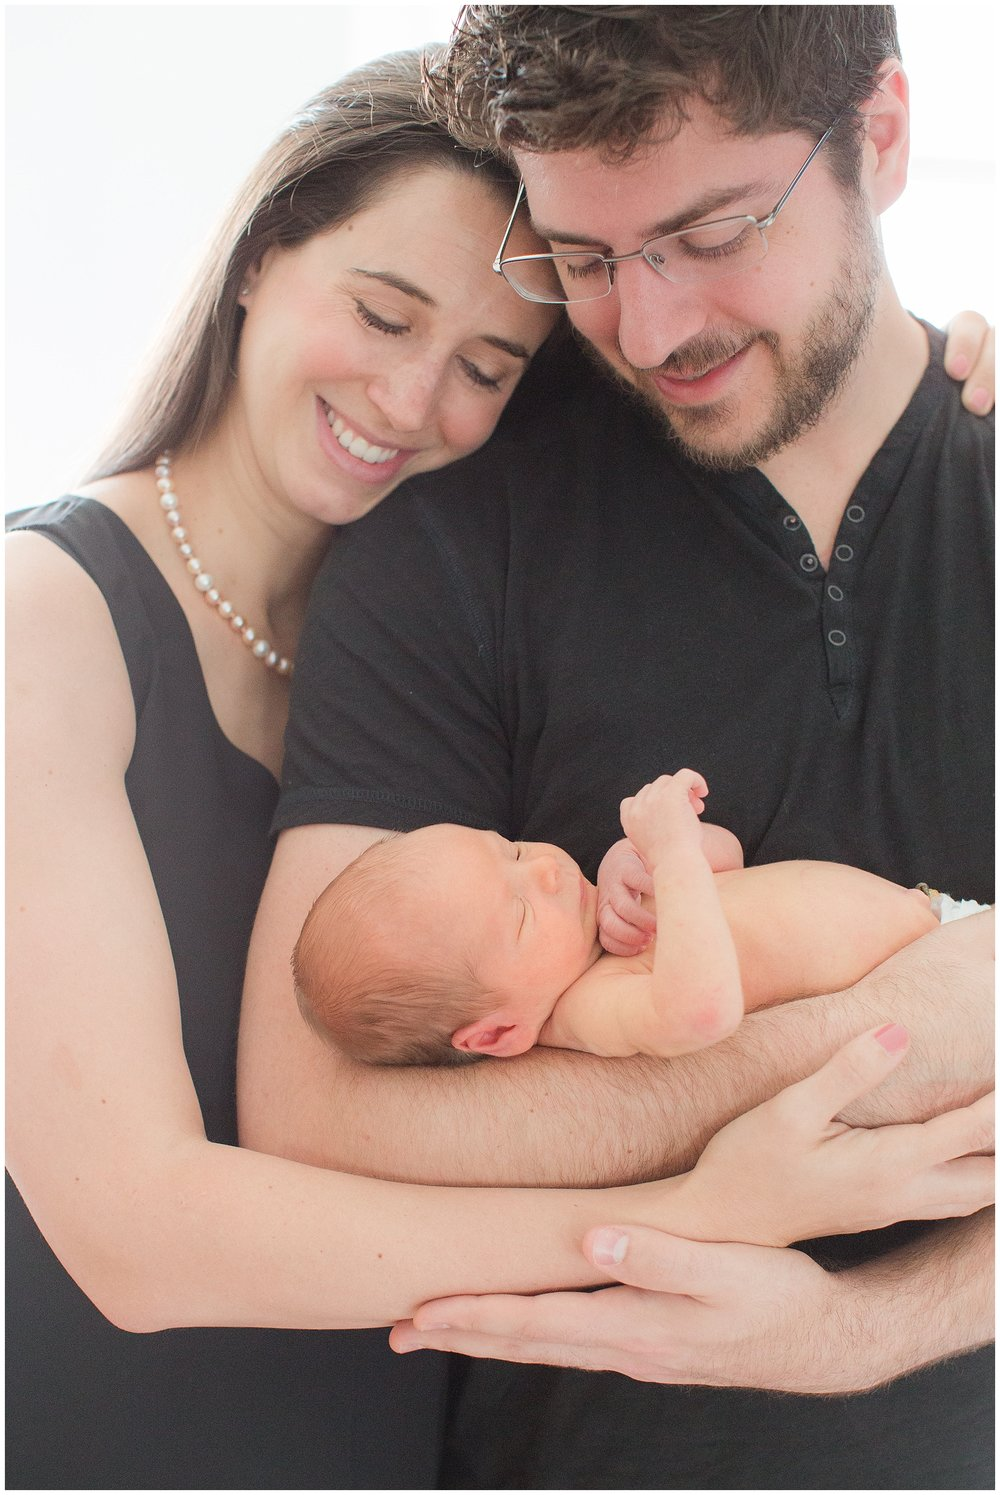 posed_newbornsession_0005.jpg